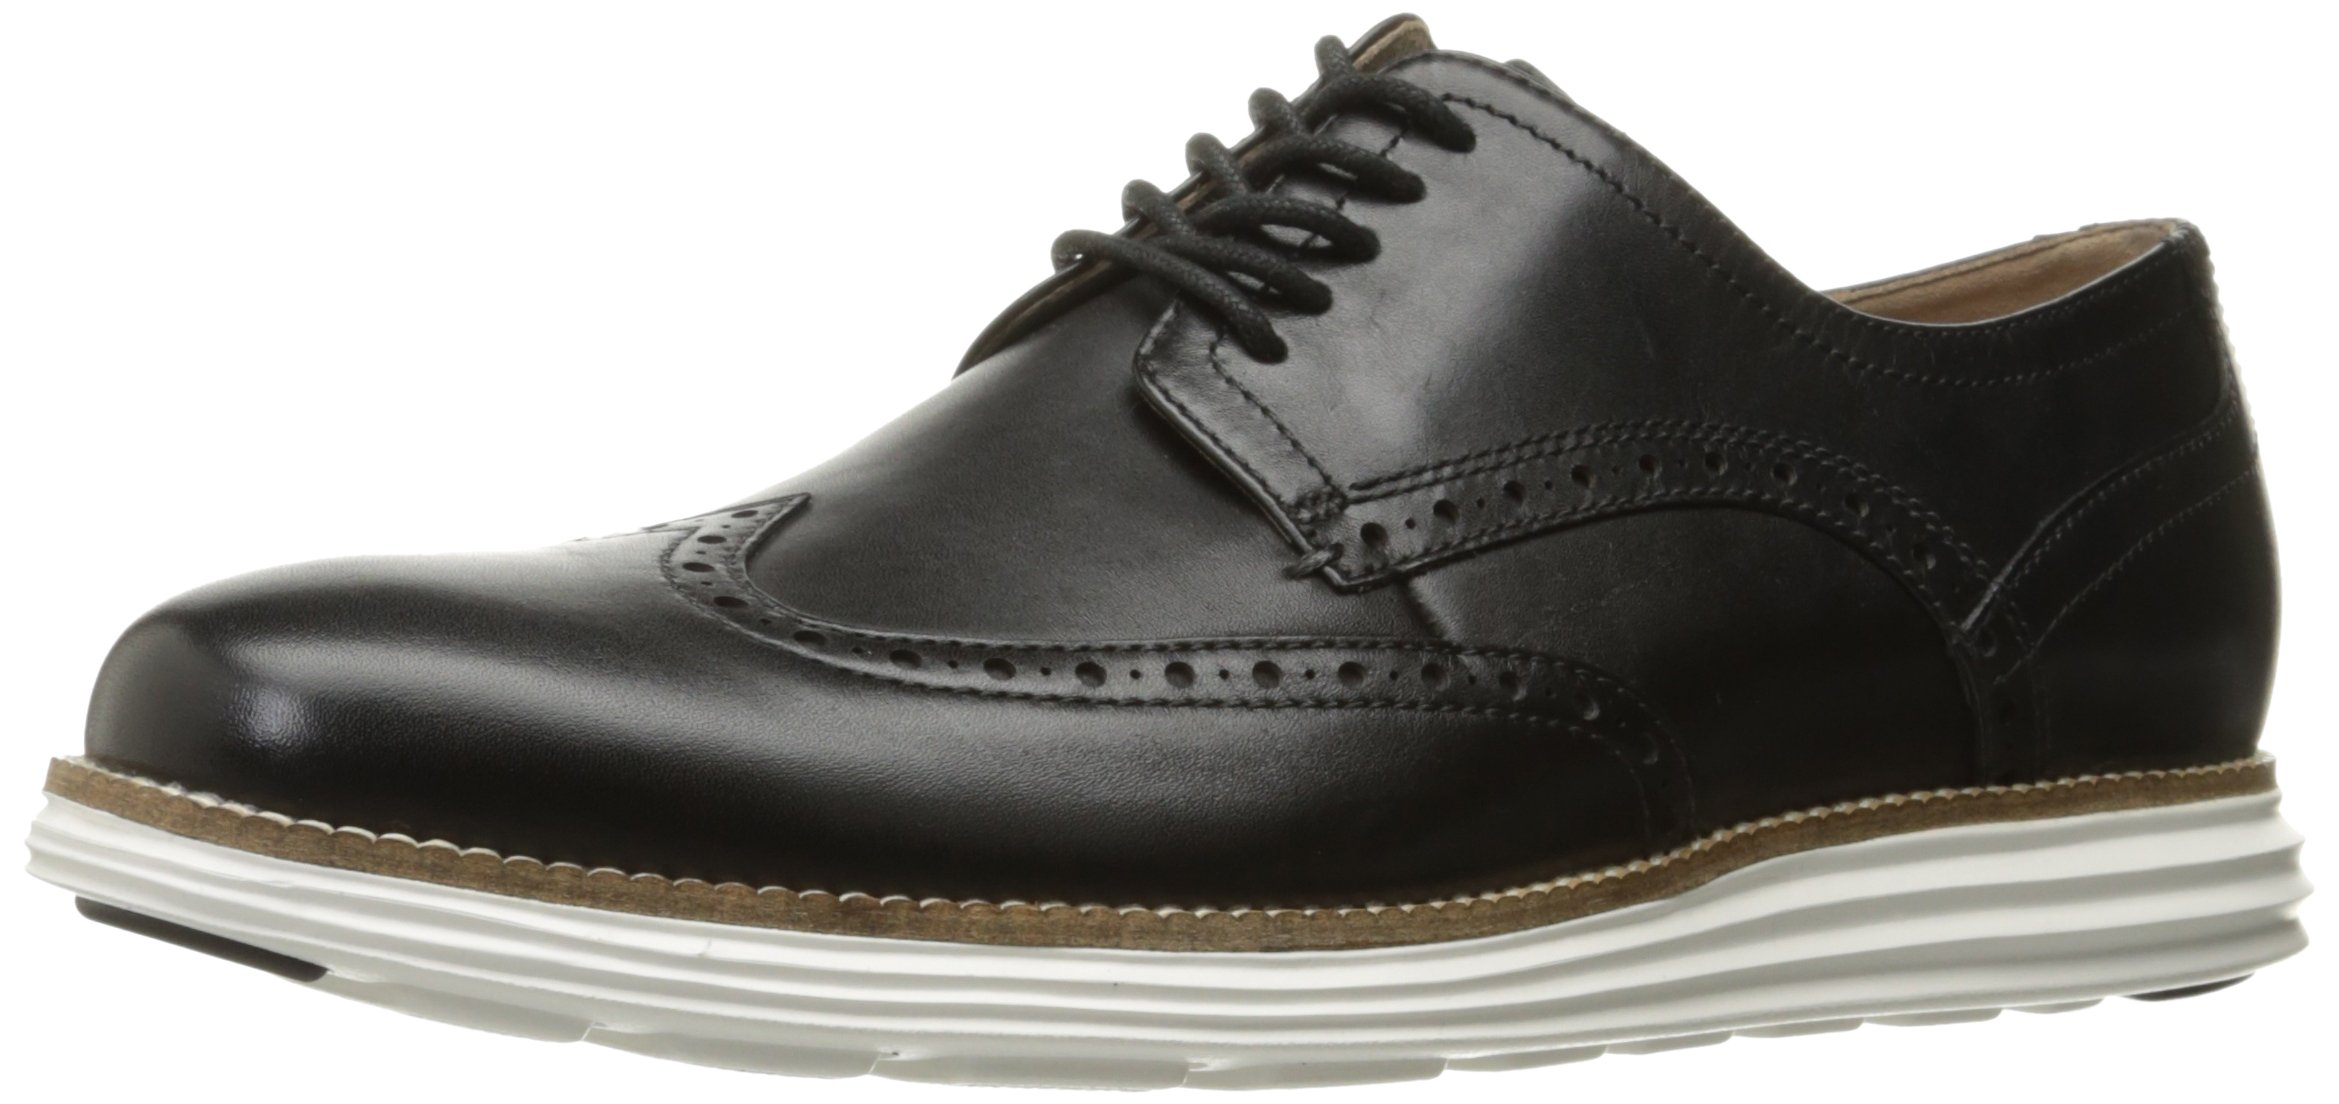 Cole Haan Men's Original Grand Shortwing Oxford Shoe, Black Leather/White, 10.5 Medium US